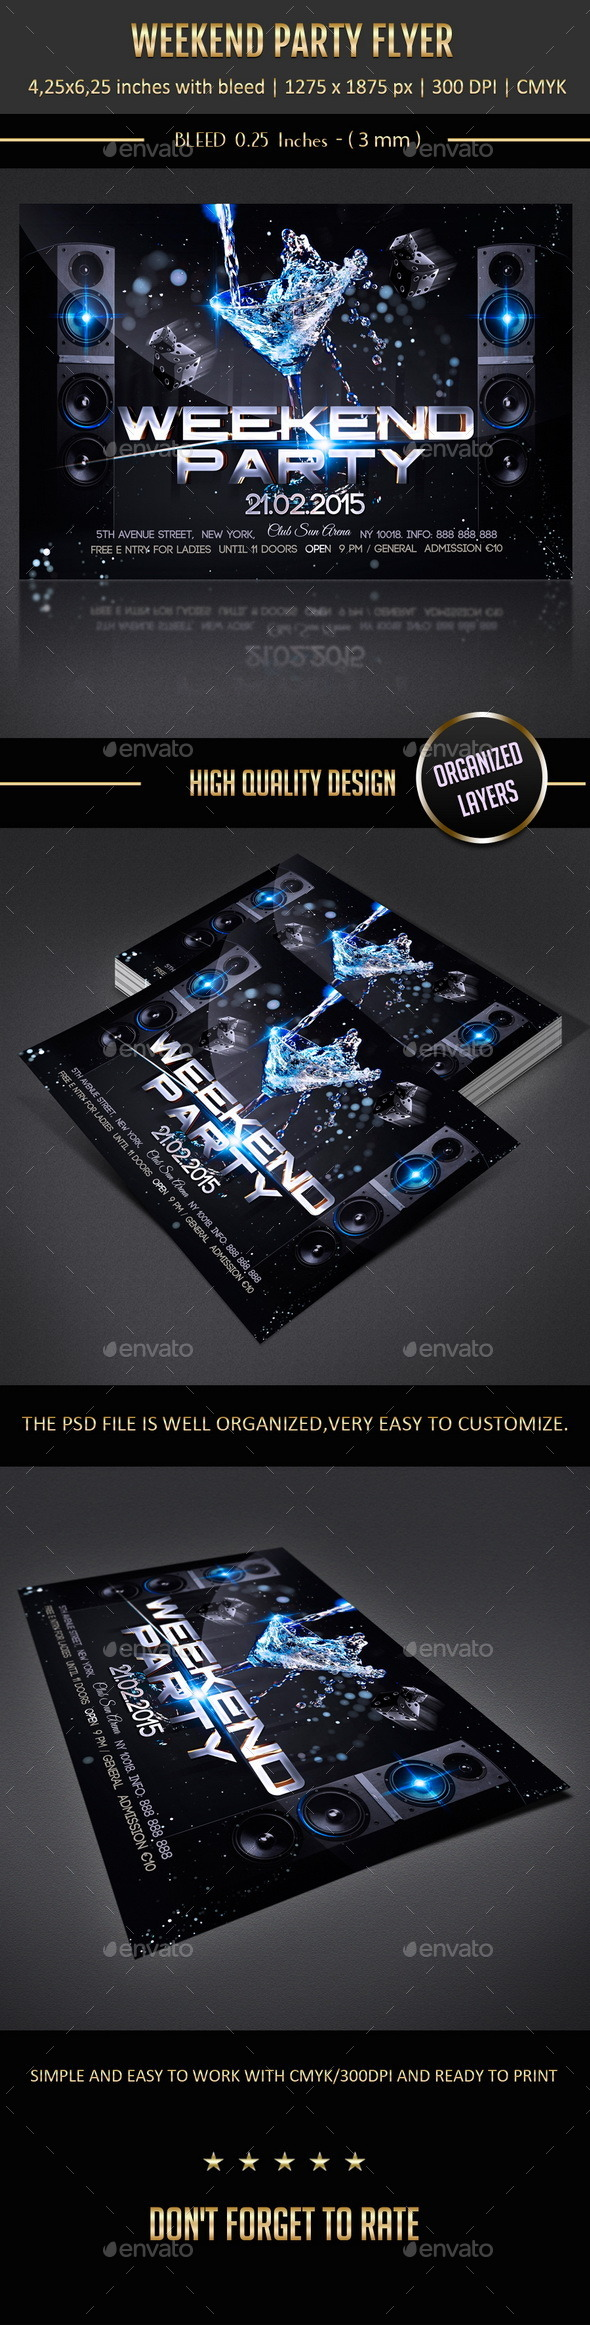 GraphicRiver Weekend Party Flyer 10364695